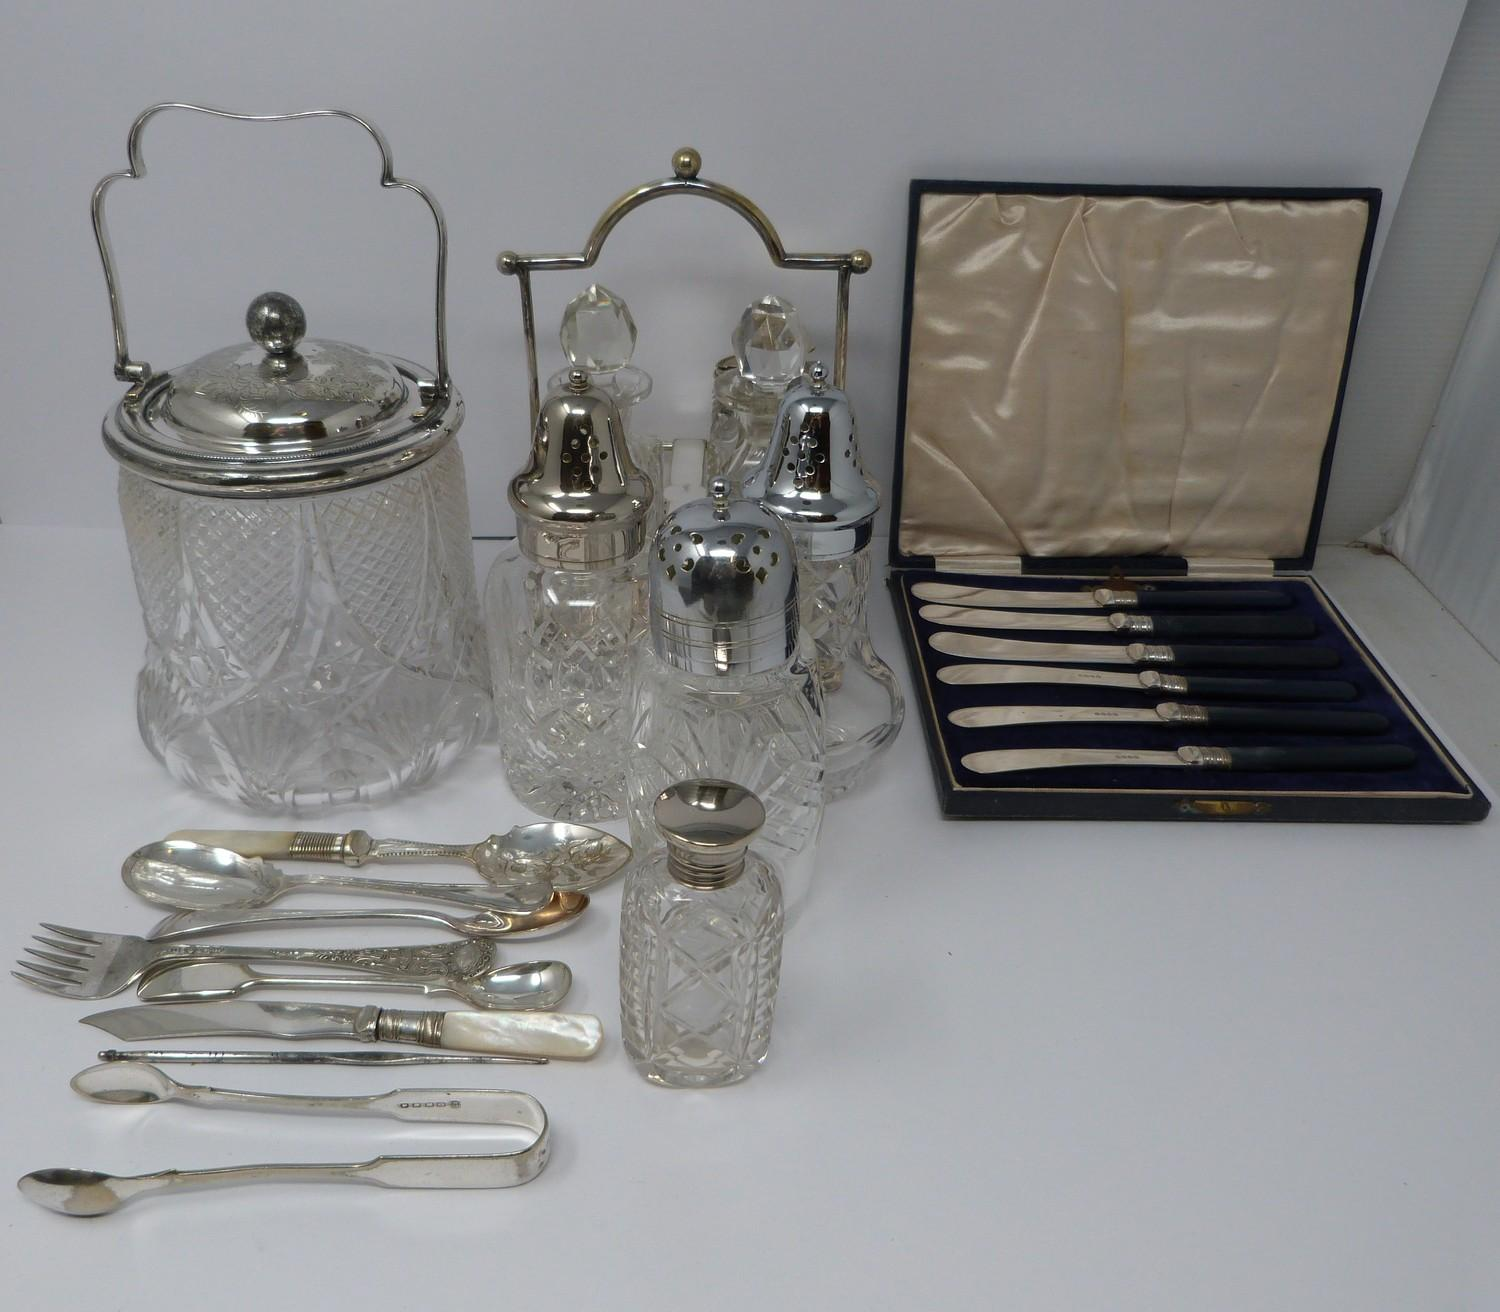 Collection of silver plate including, cruet, cut glass buiscuit barrel, cased butter and cut glass